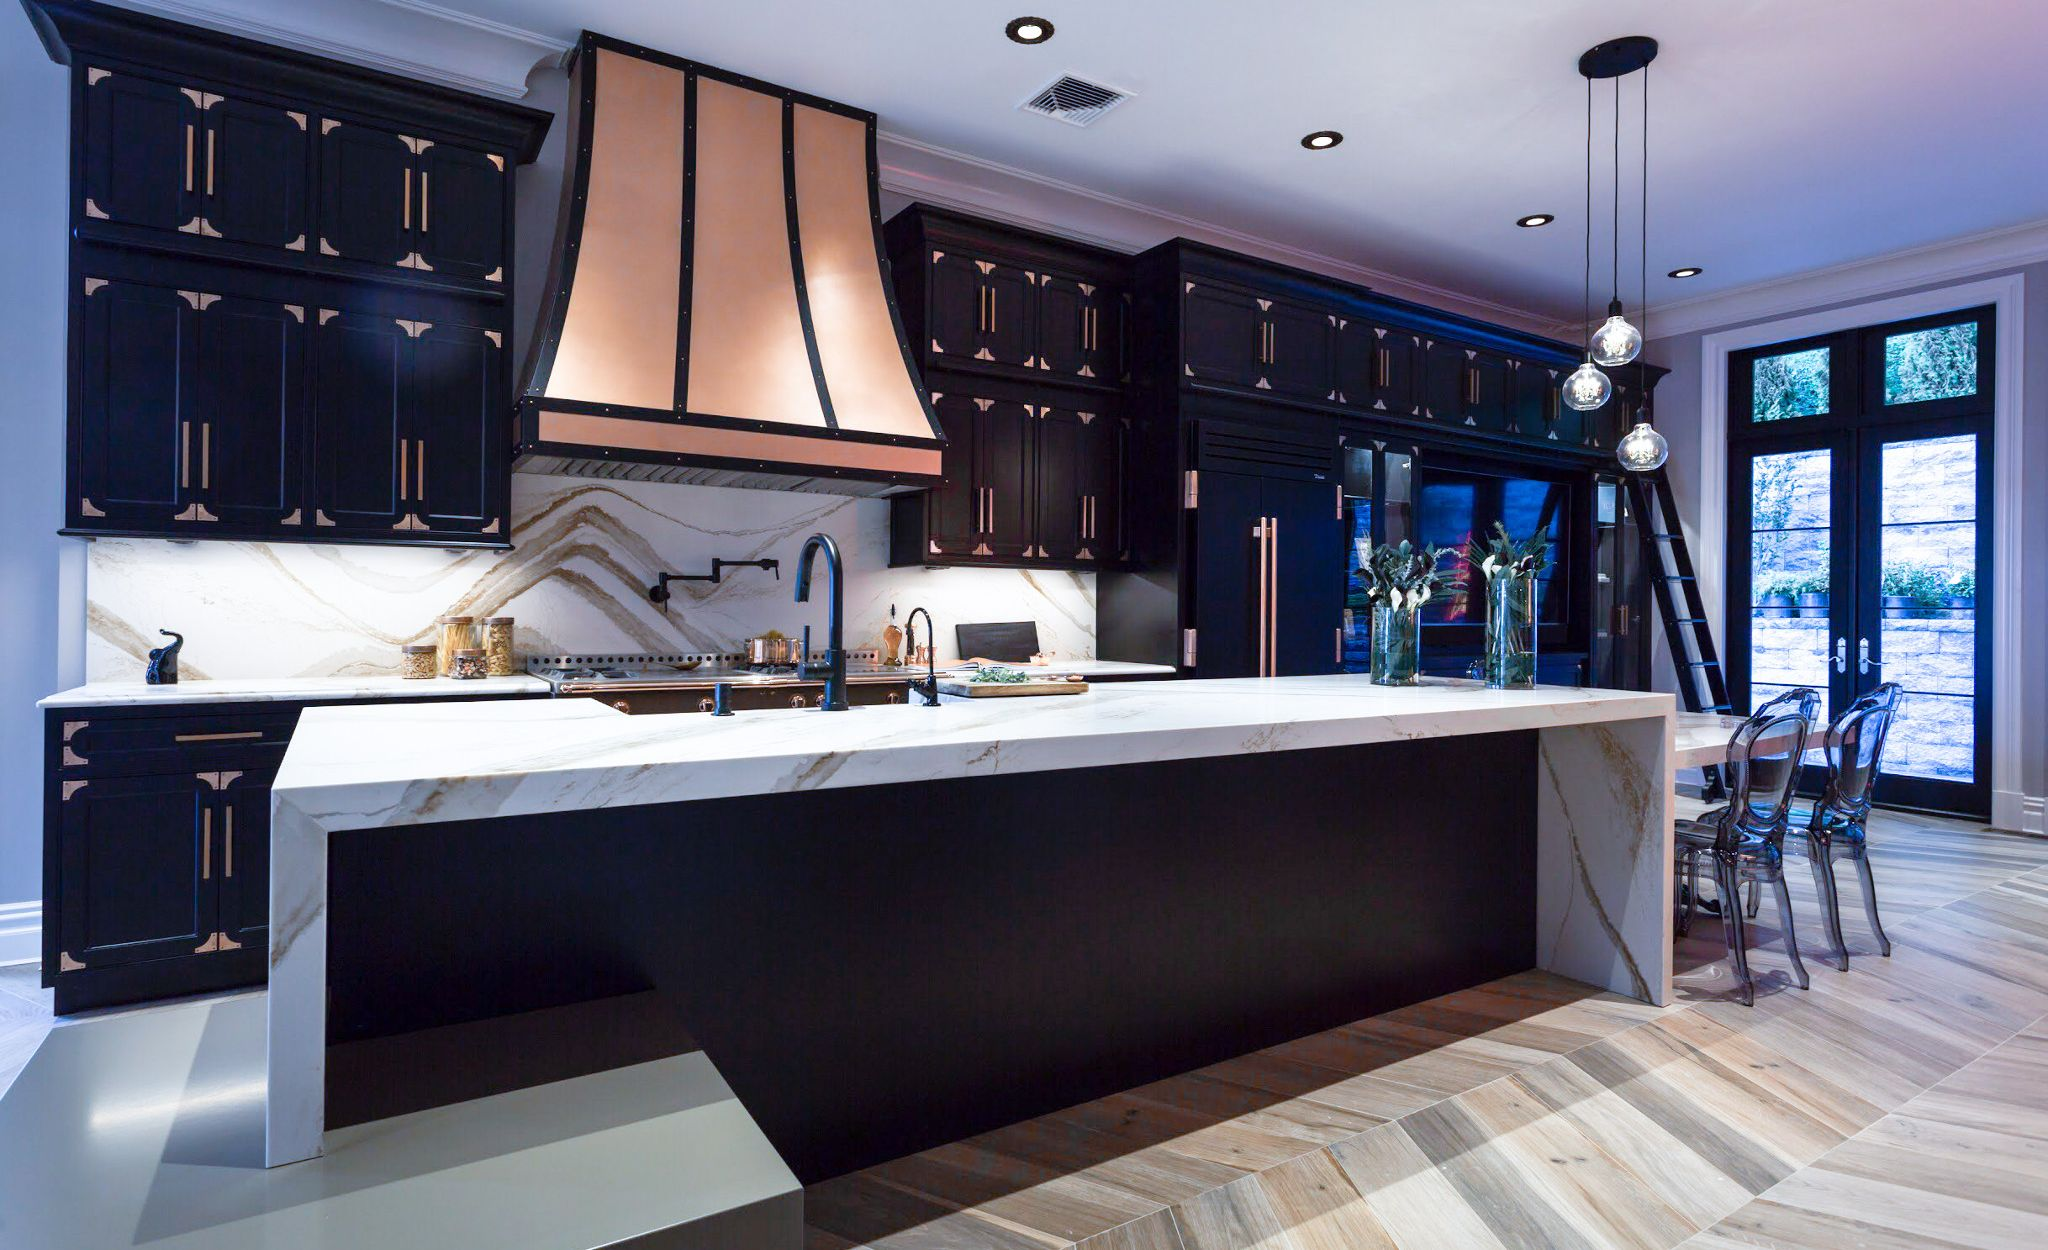 Gold marble-look quartz countertops in a black, high-contrast kitchen.